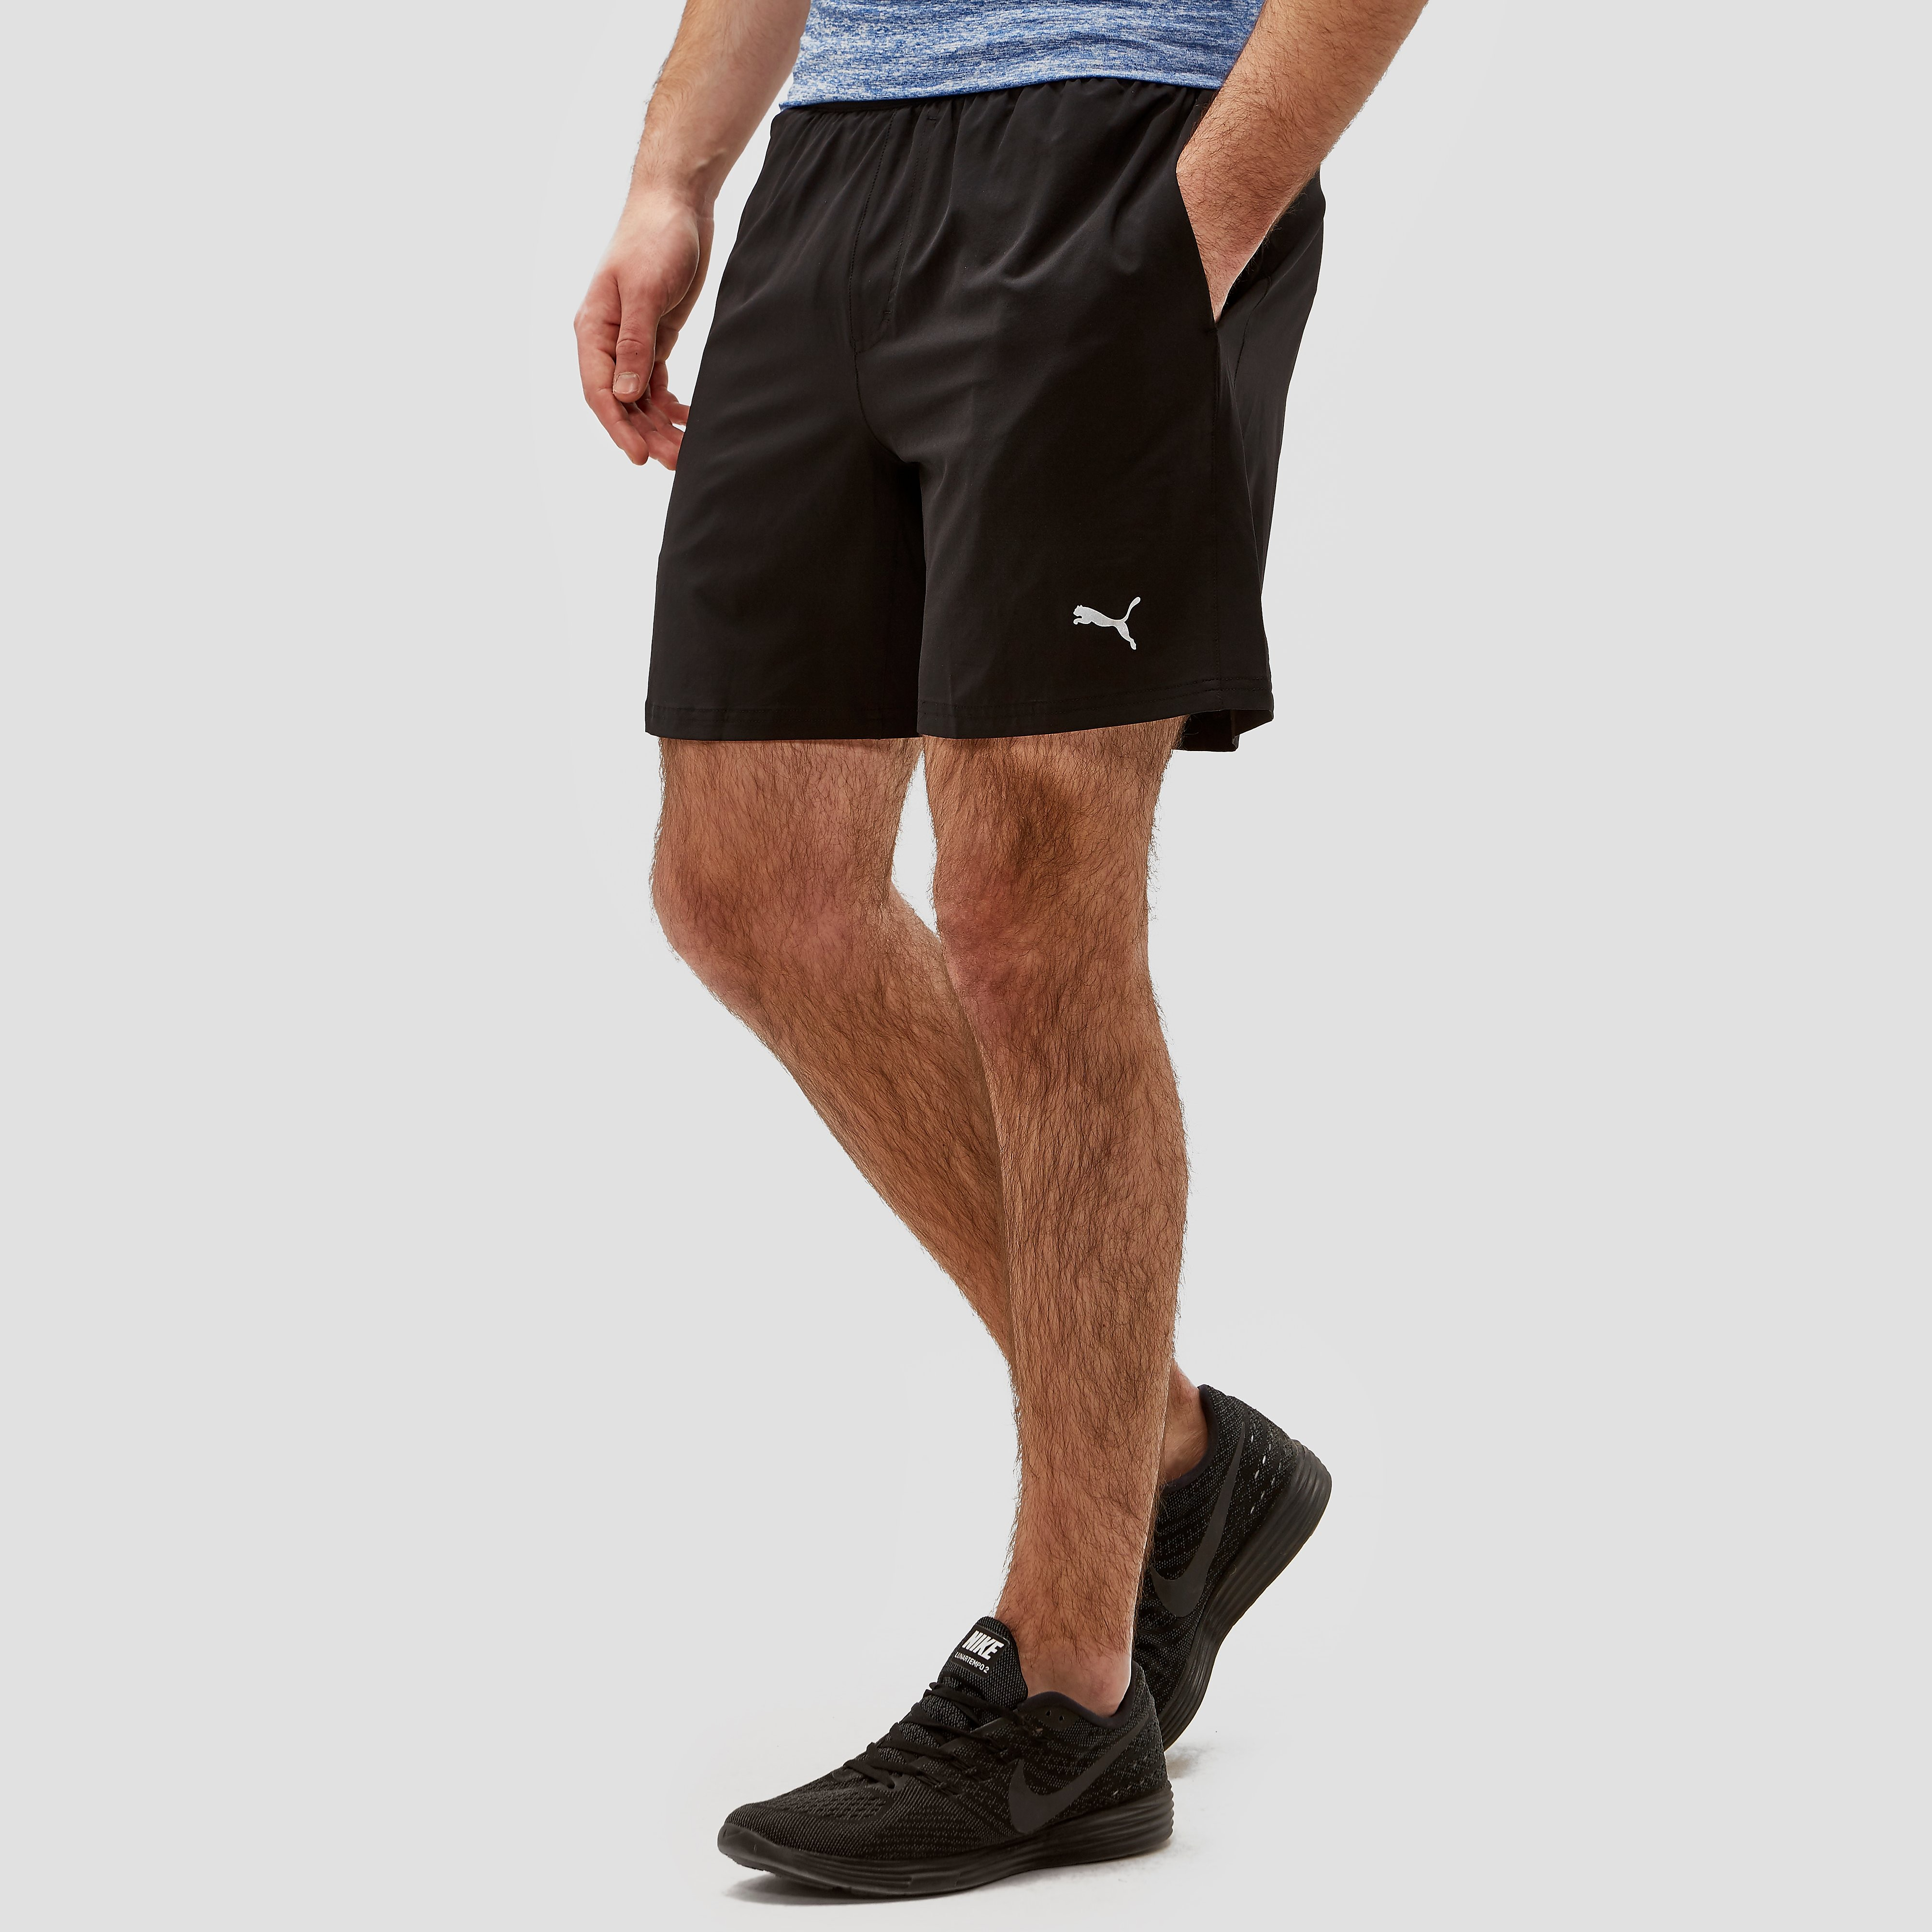 PUMA PACE 7-INCH HARDLOOPSHORT